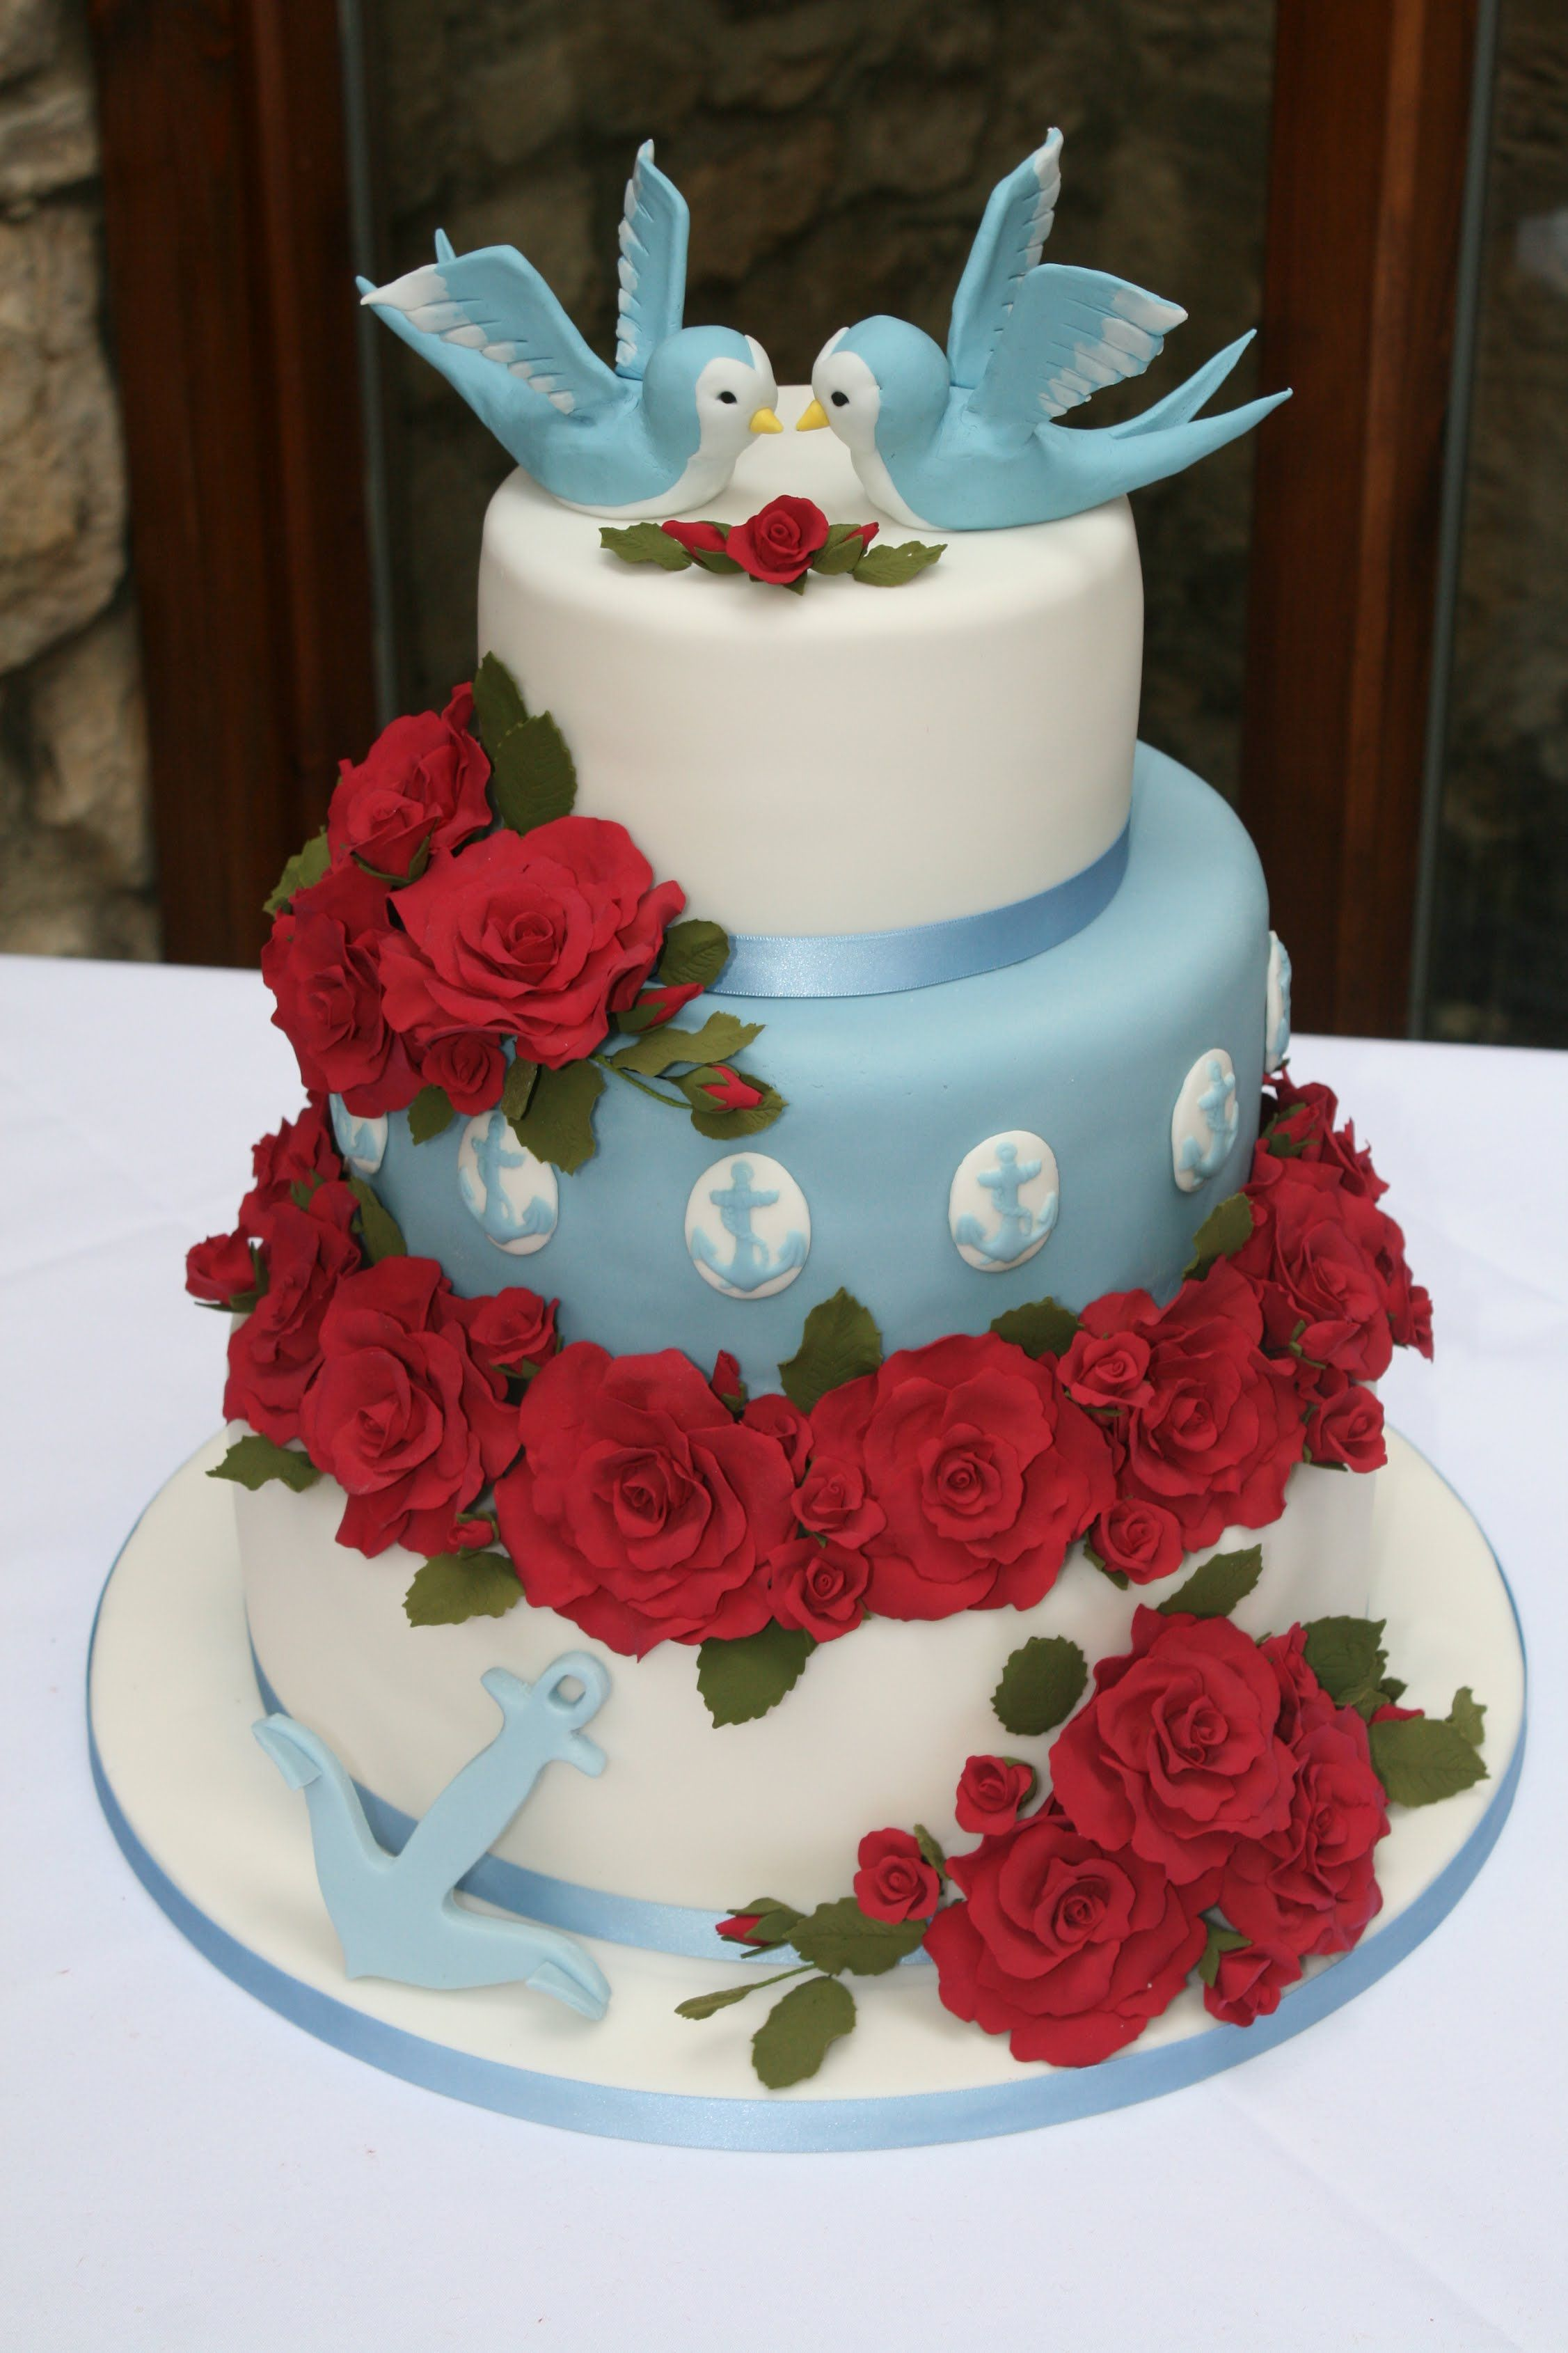 rockabilly wedding cake rockabilly wedding cake with made roses and birds 19241